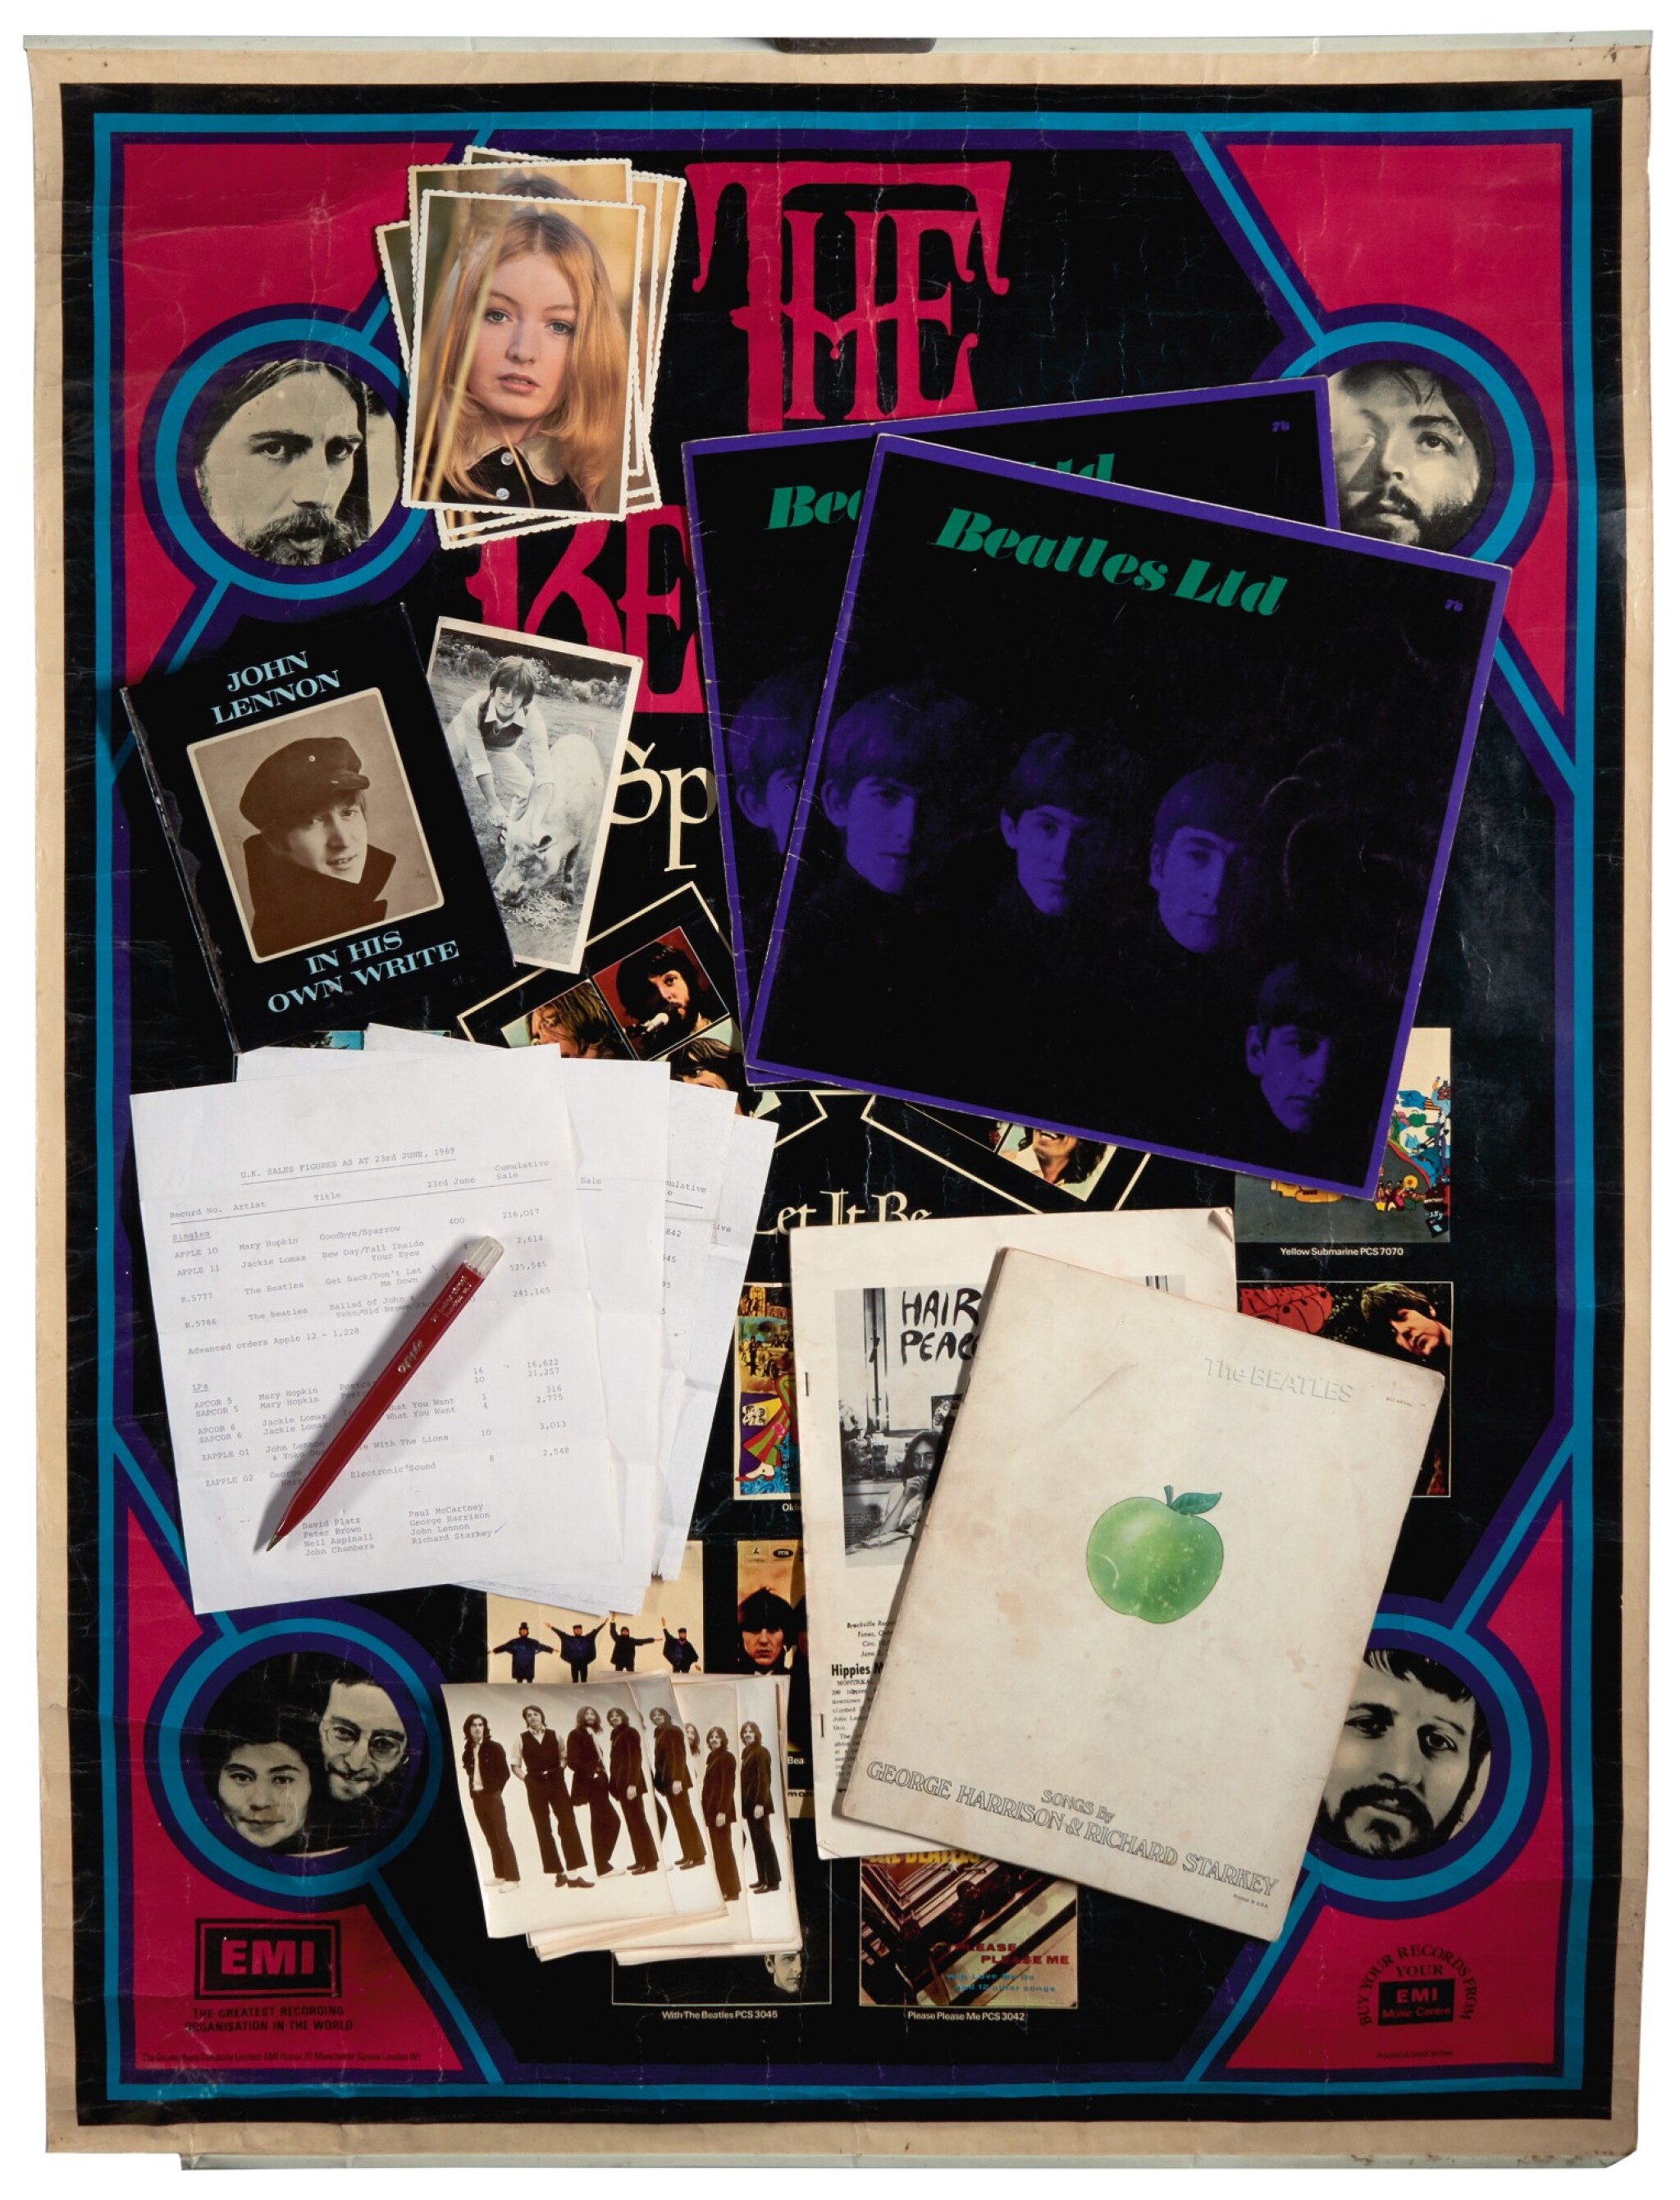 THE BEATLES   Publicity material including photos and poster, 1967-1971